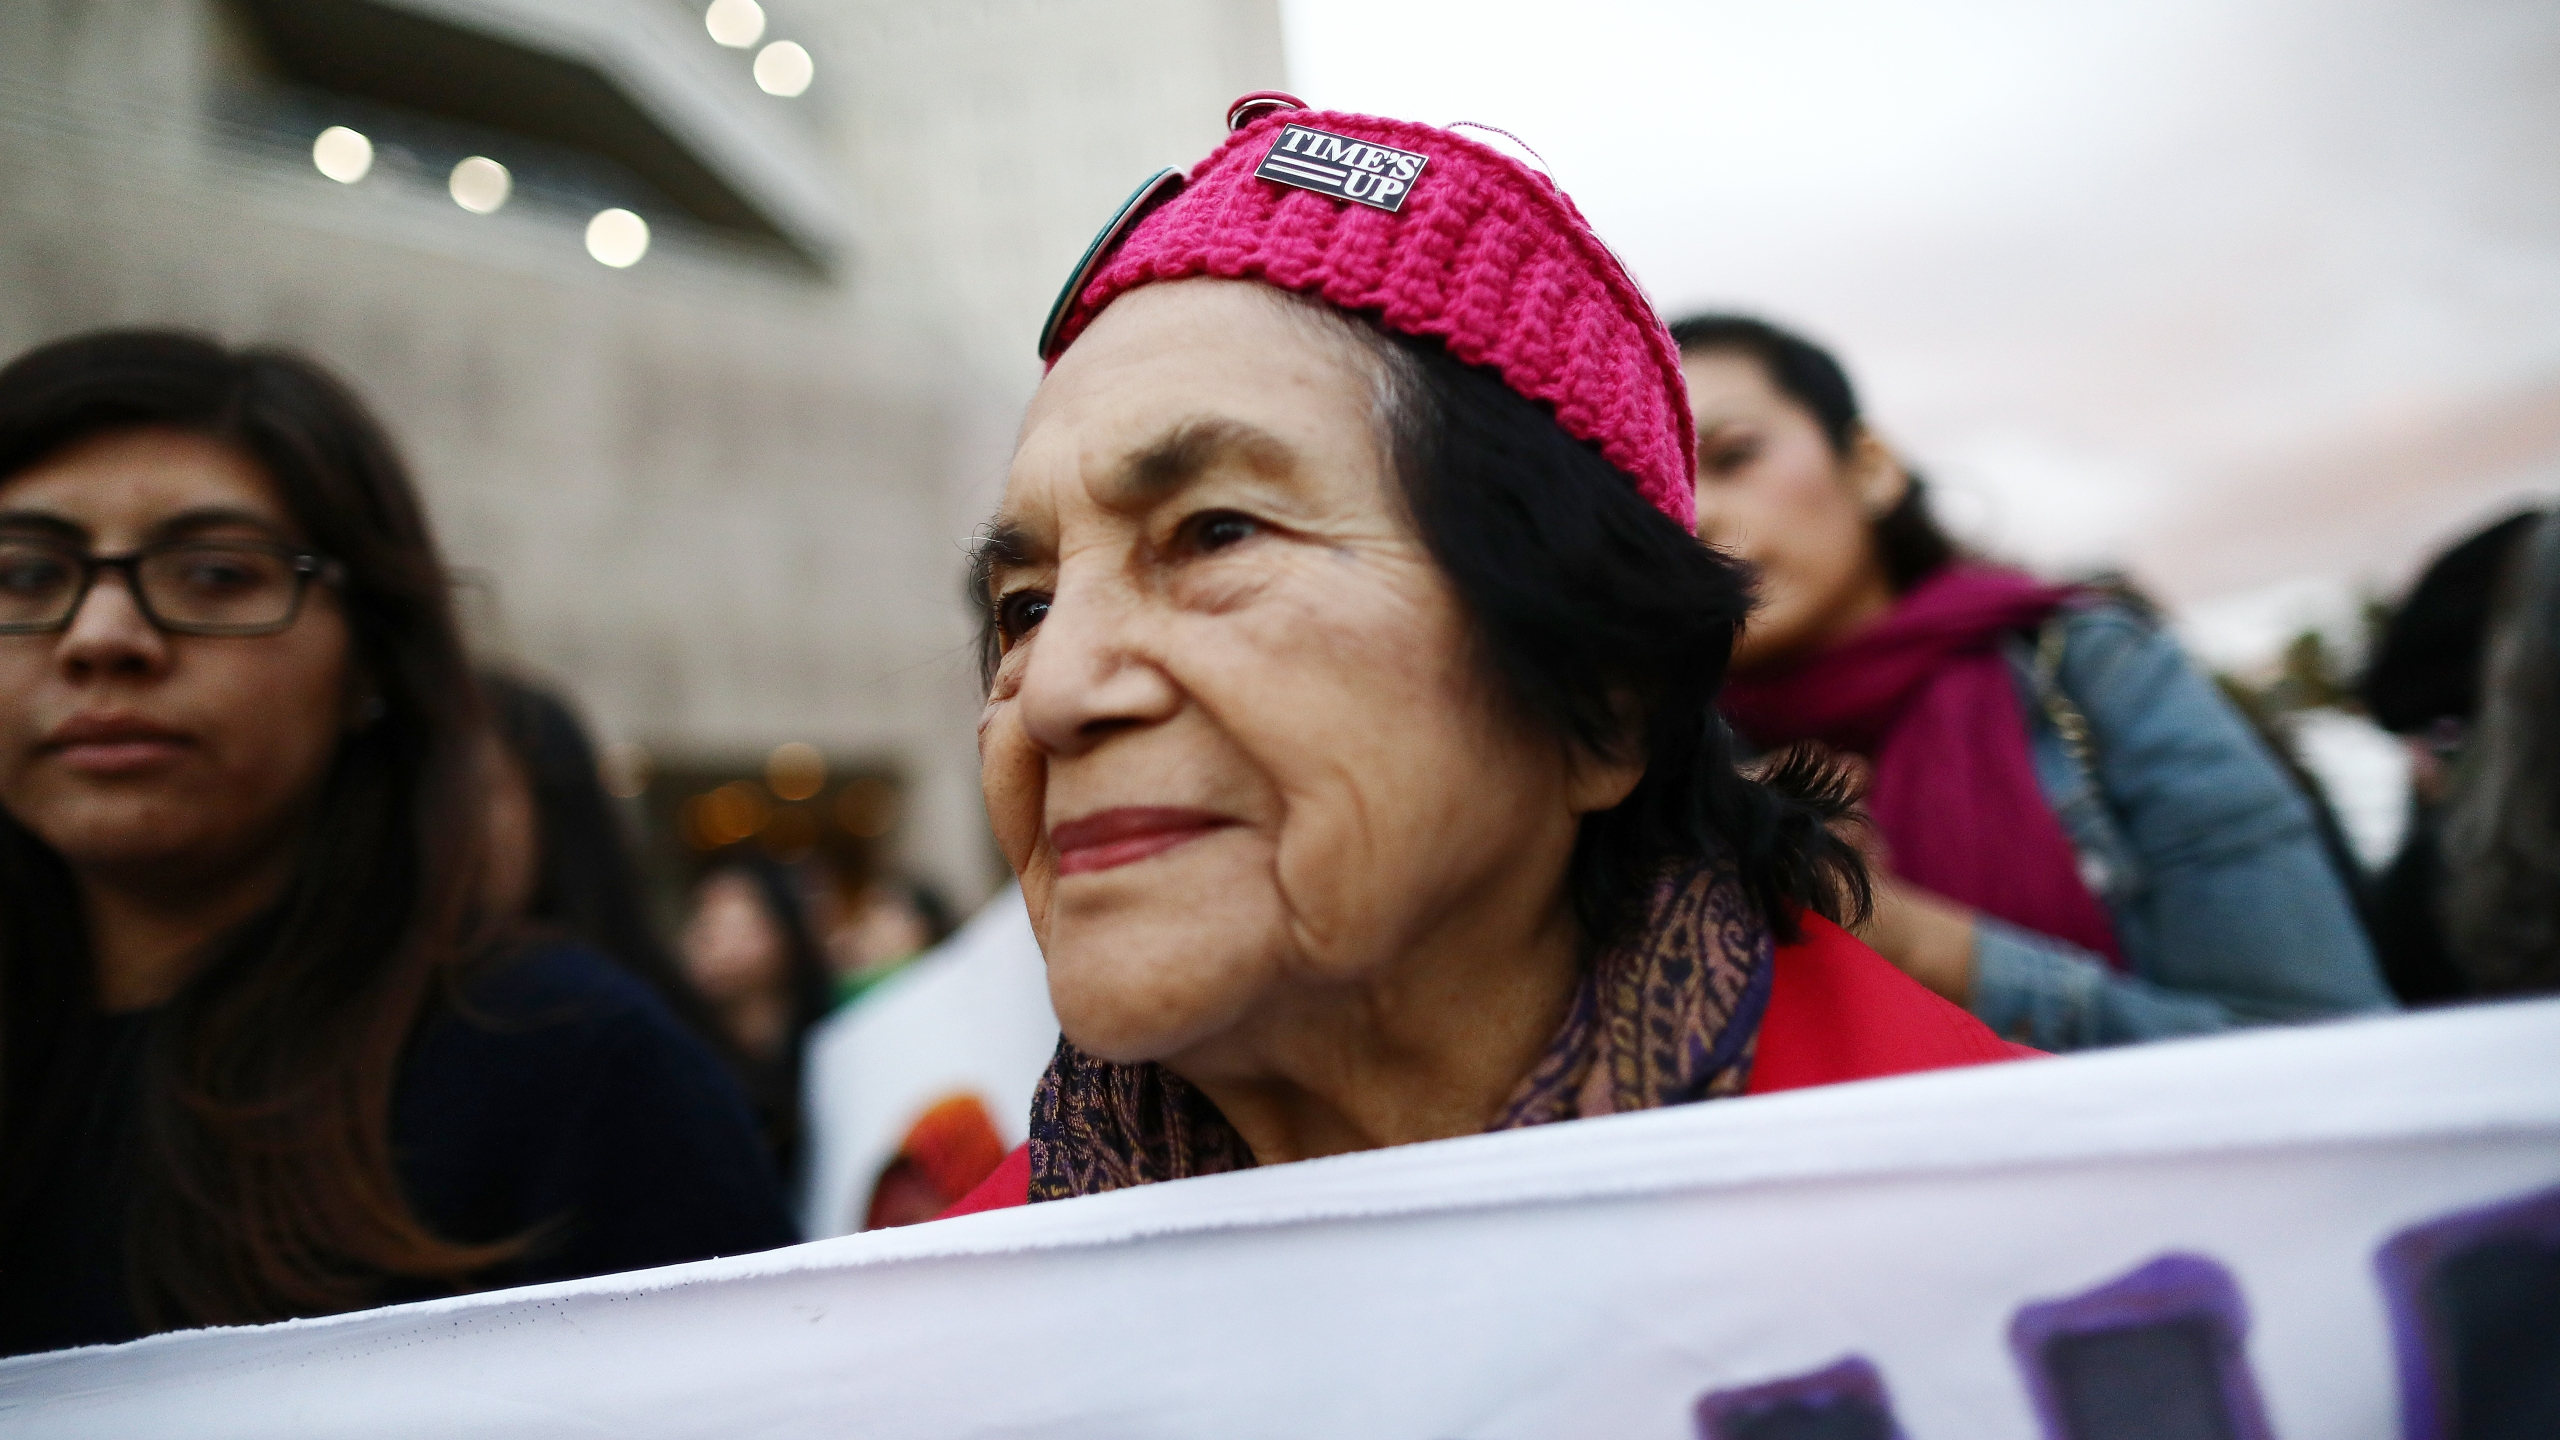 Civil rights activist Dolores Huerta, 88, marches during an International Women's Strike rally on March 8, 2019. in Los Angeles. (Mario Tama/Getty Images)